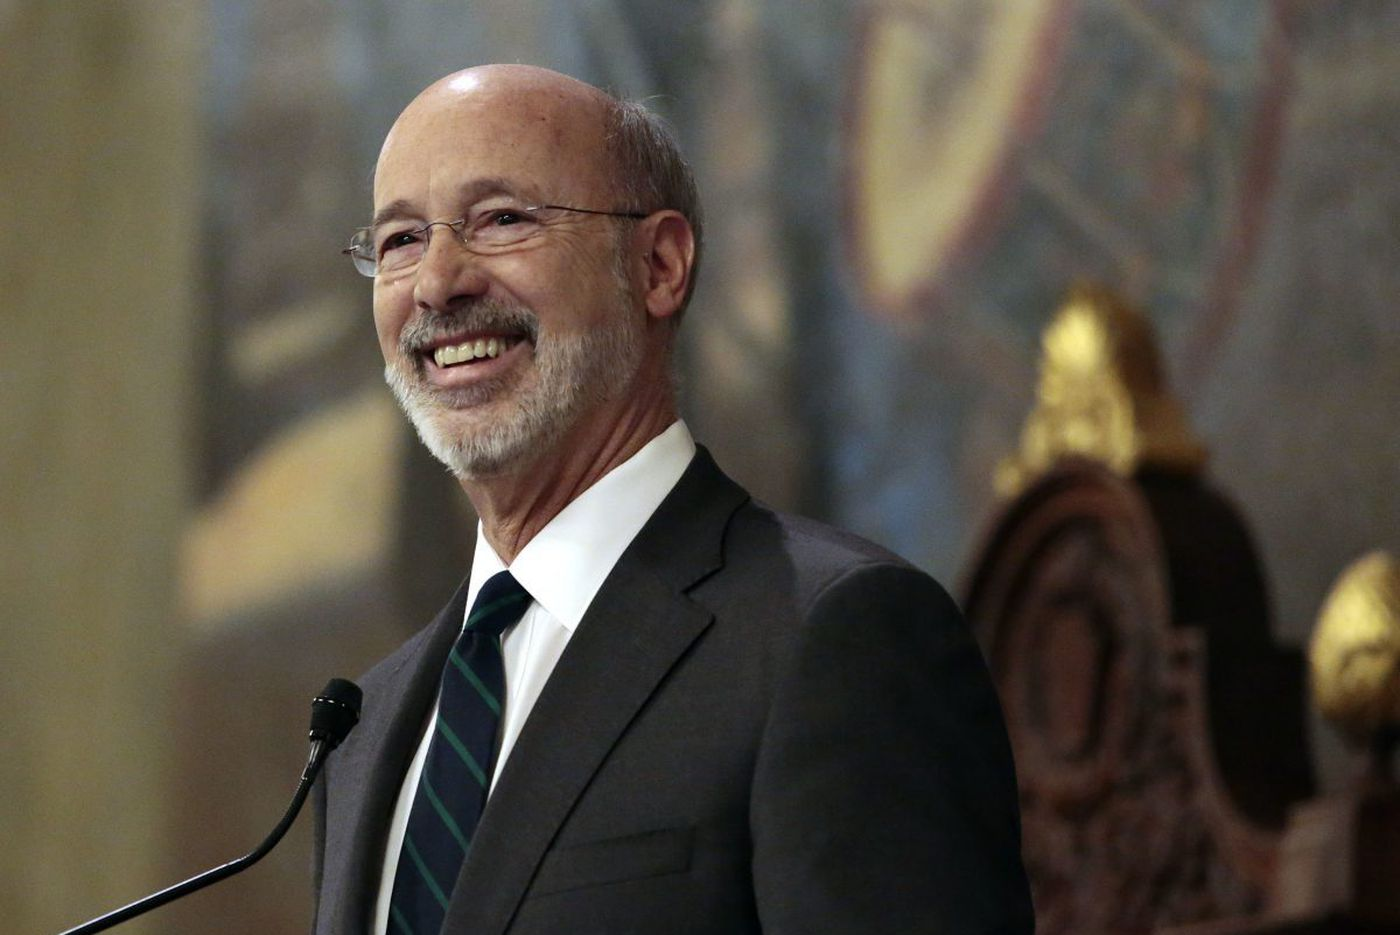 Gov. Wolf calls for independent commission to draw Pa. electoral maps